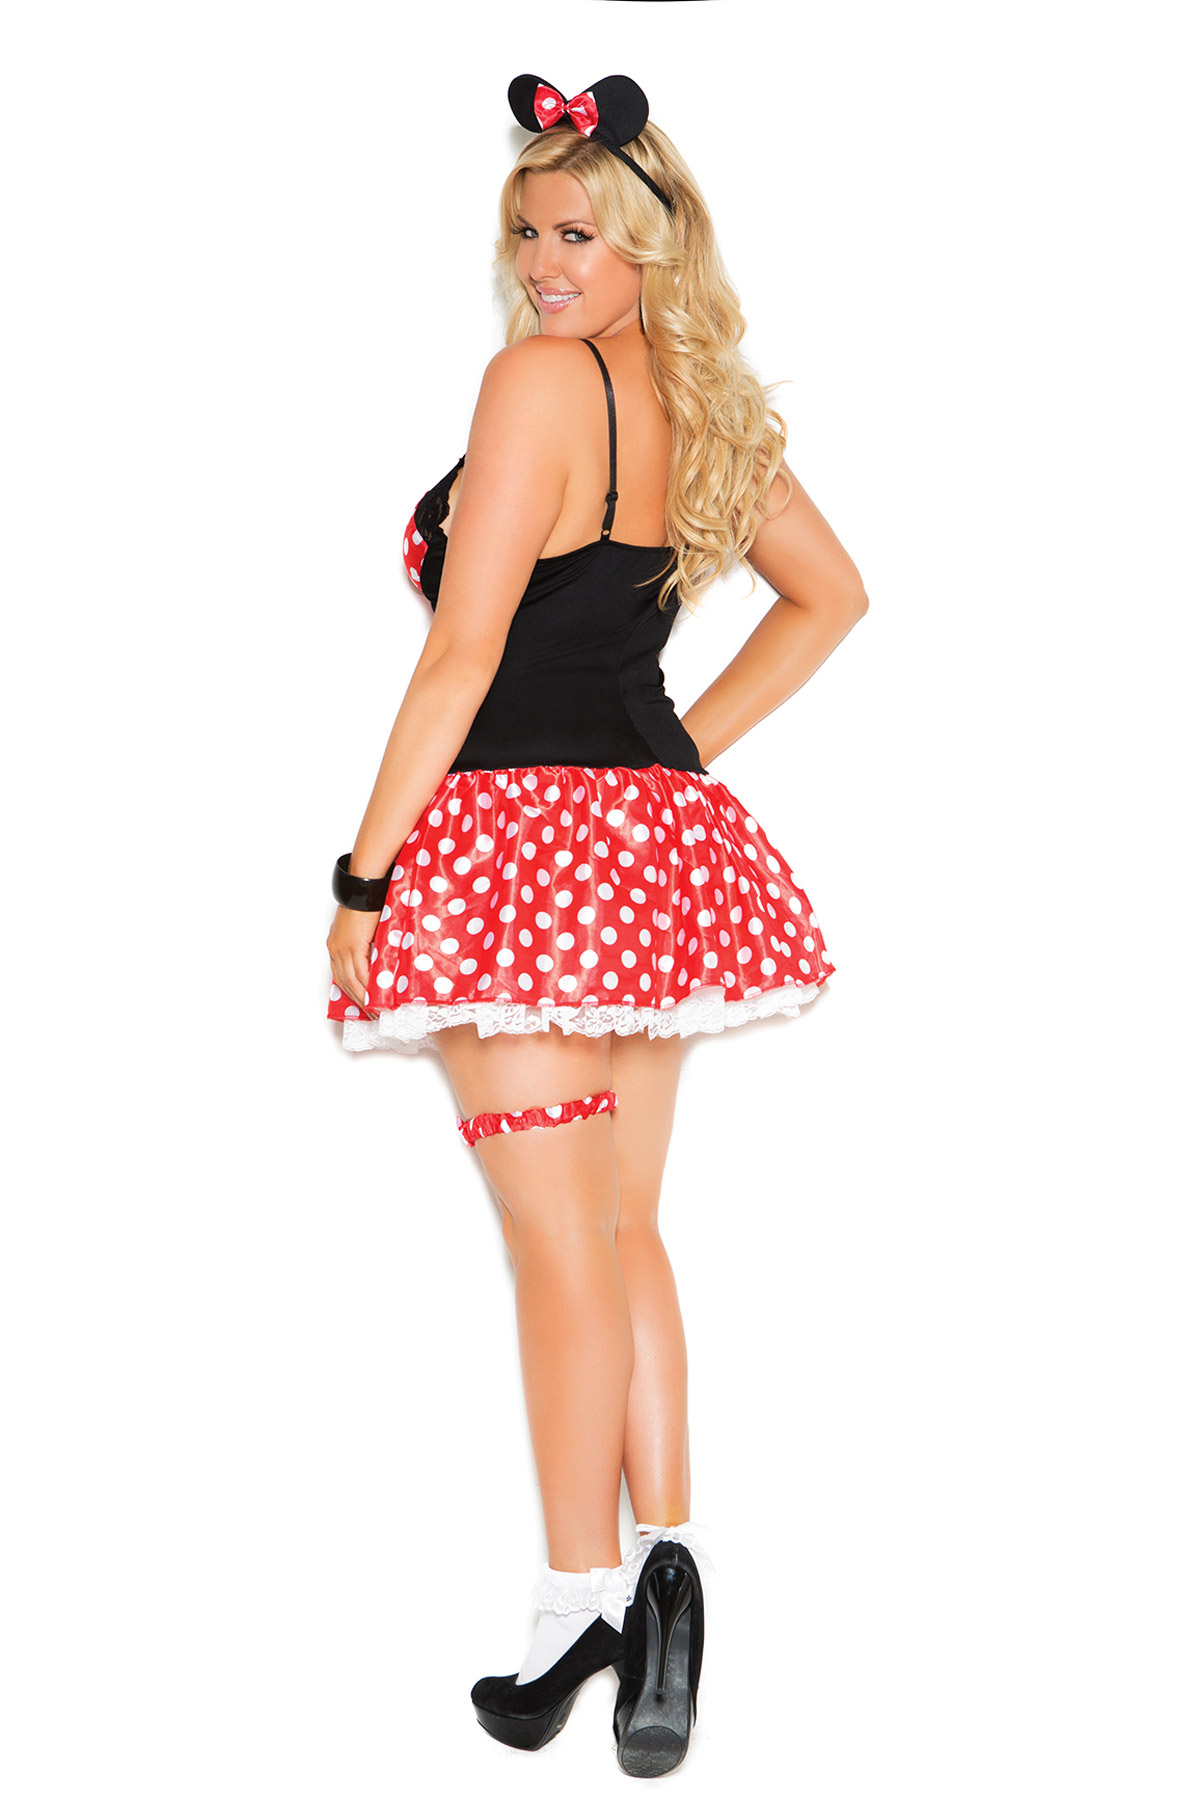 Miss Mouse Plus Size Costume By Elegant Moments Women 3x 4x Ebay